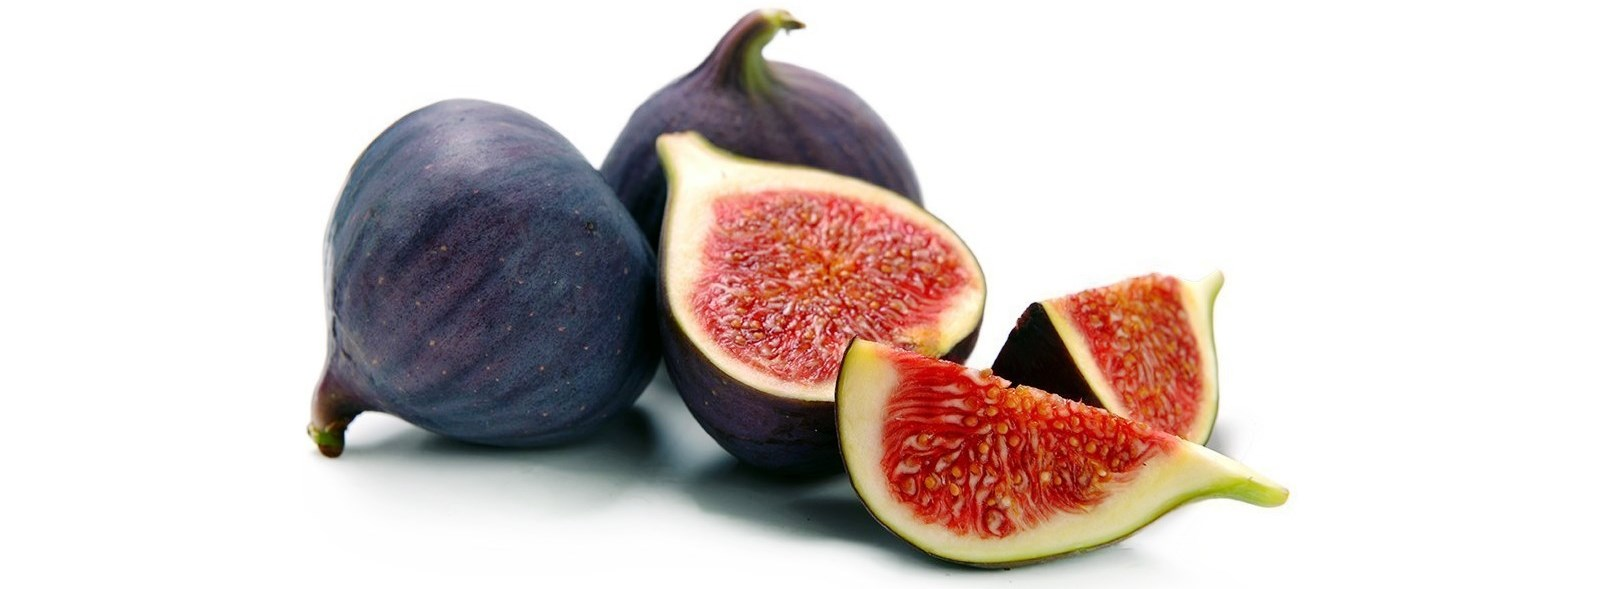 common-fig-seeds-ficus-carica.jpg